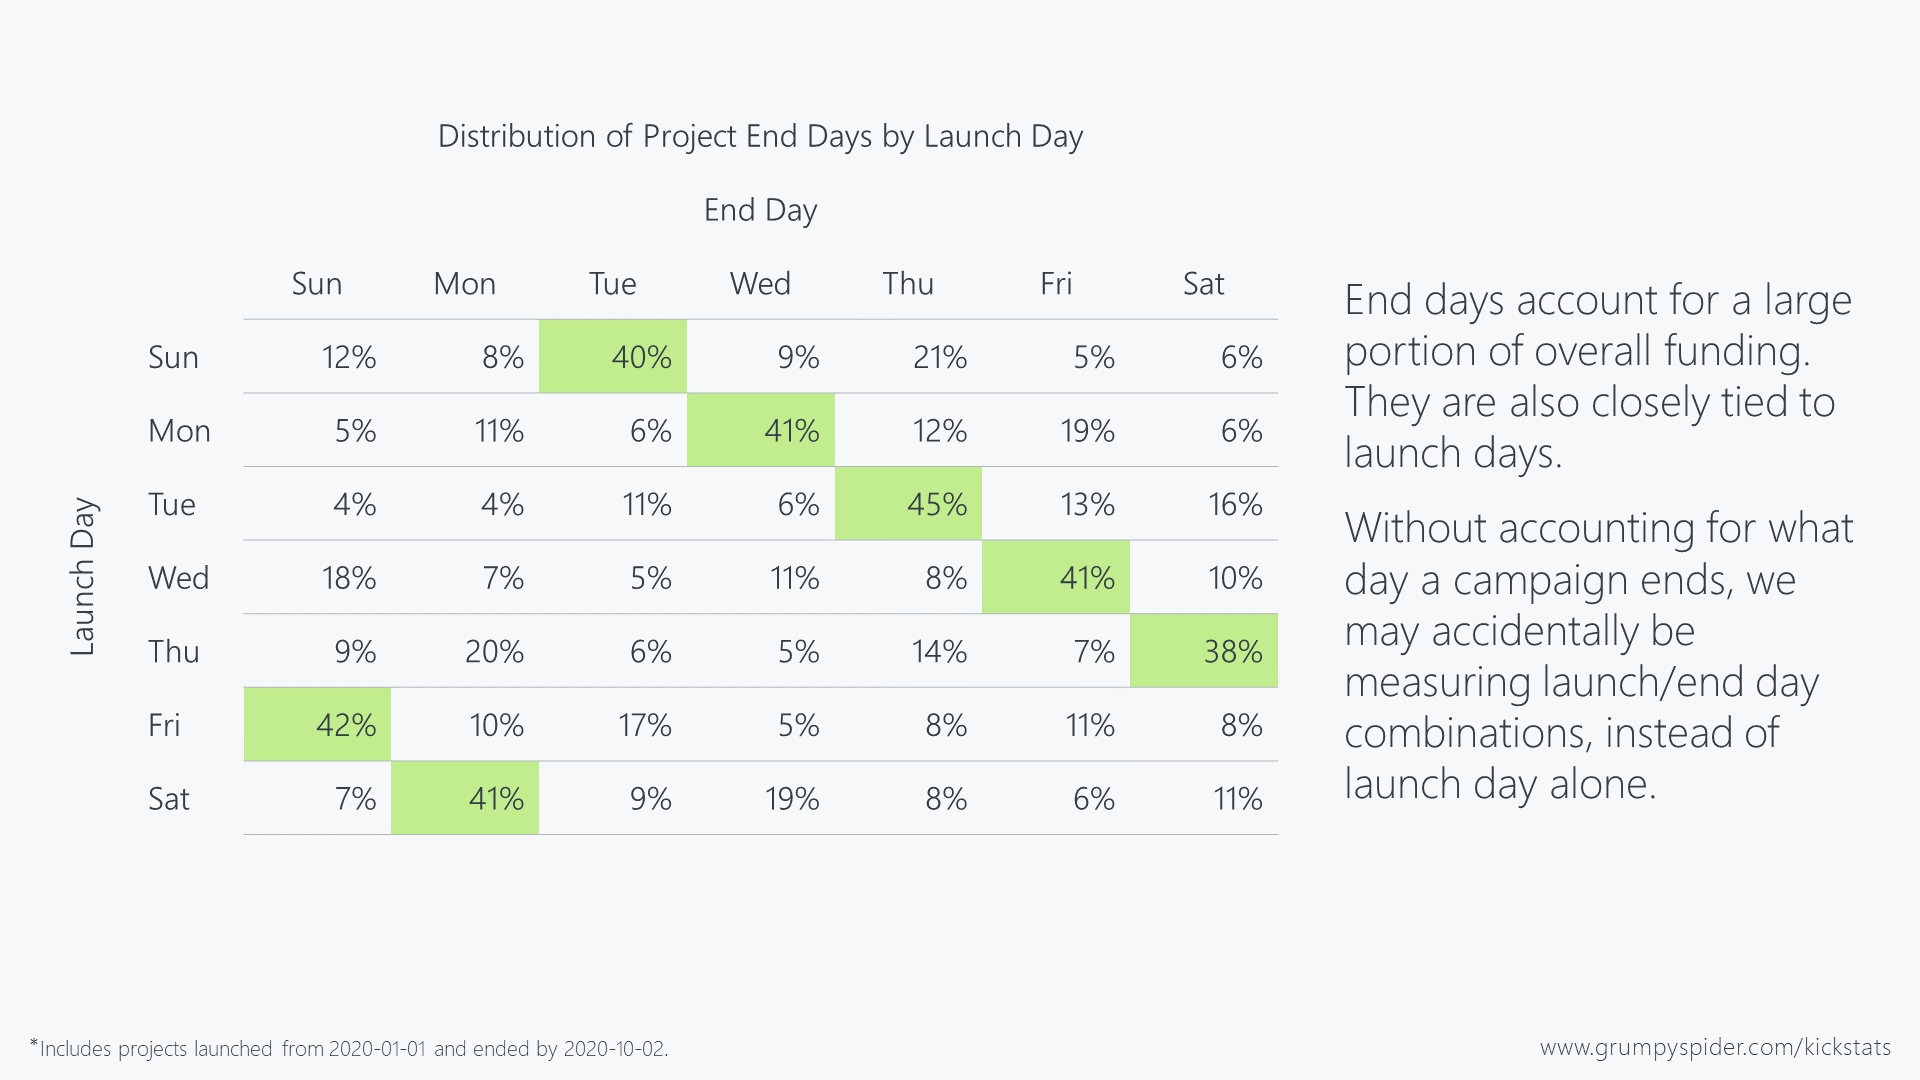 Popularity of Kickstarter launch and end day combinations